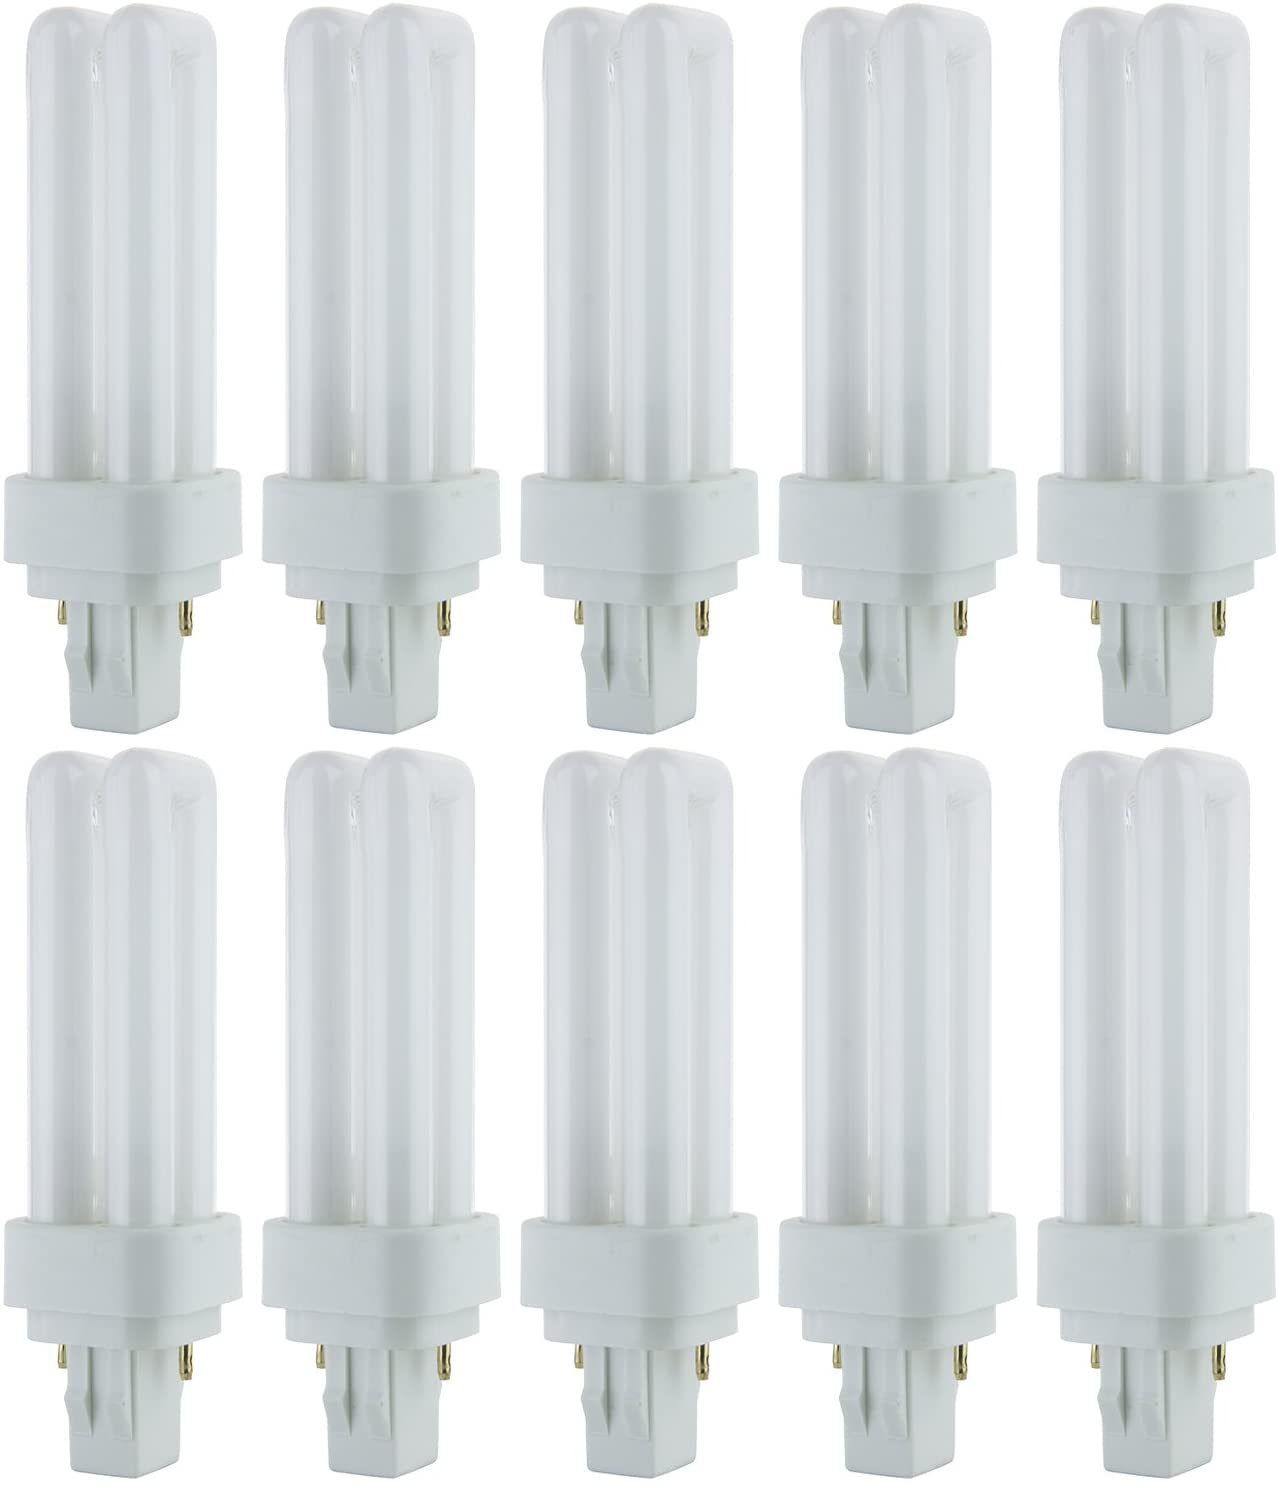 Sunlite PLD13/SP35K/10PK 3500K Neutral White Fluorescent 13W PLD Double U-Shaped Twin Tube CFL Bulbs with 2-Pin GX23-2 Base (10 Pack)